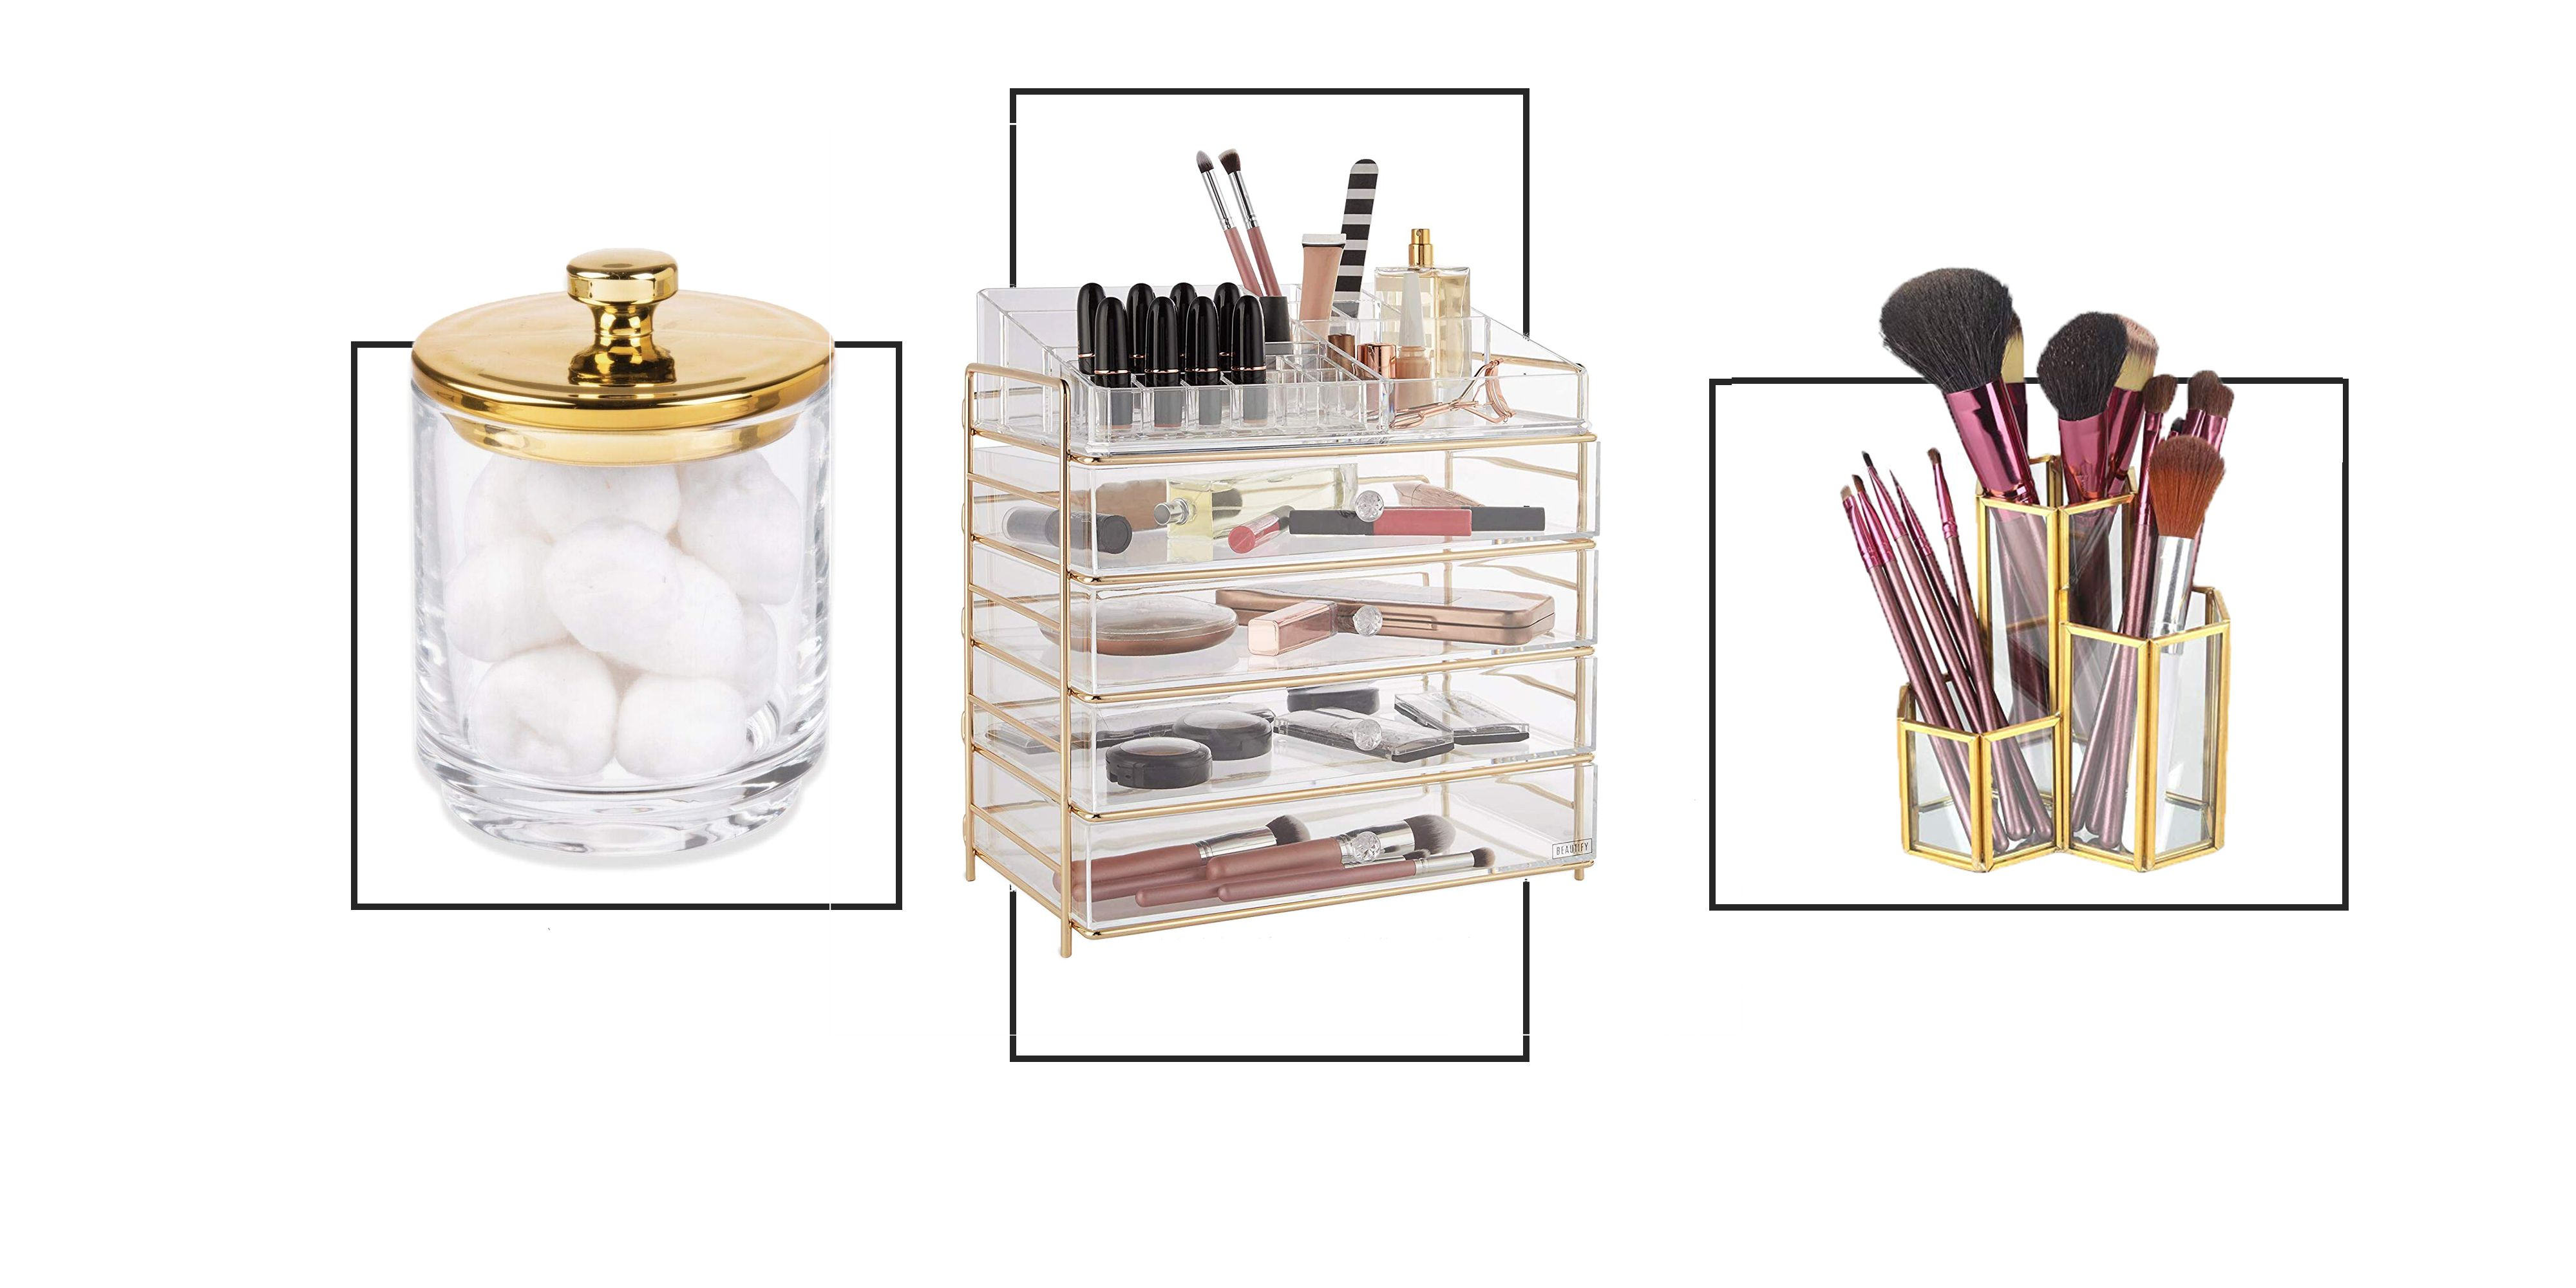 18 of the best beauty organisers on Amazon